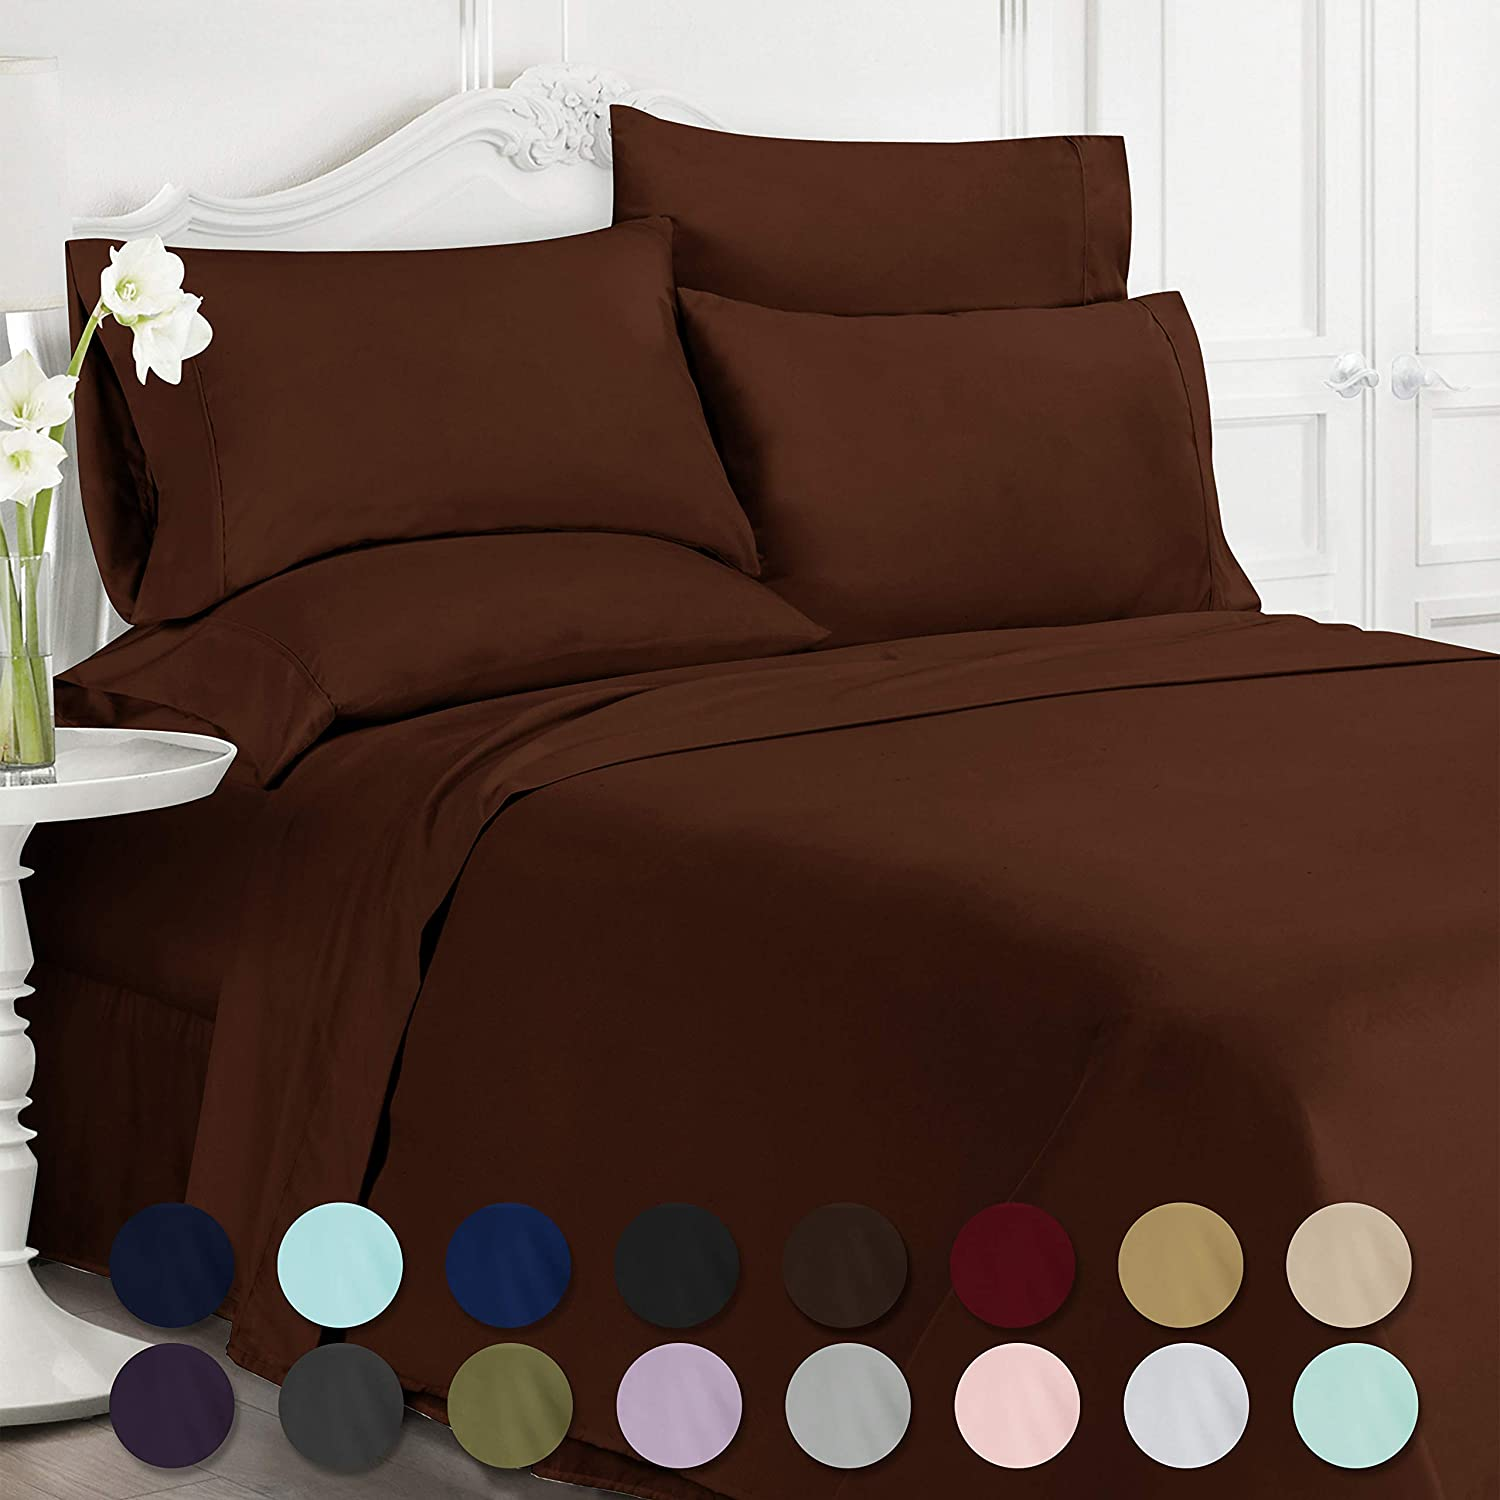 Swift Home Luxury Bedding Collection, Ultra-Soft Brushed Microfiber 6-Piece Bed Sheet Sets, Extremely Durable - Easy Fit - Wrinkle Resistant - (Includes 2 Bonus Pillowcases), Full, Brown